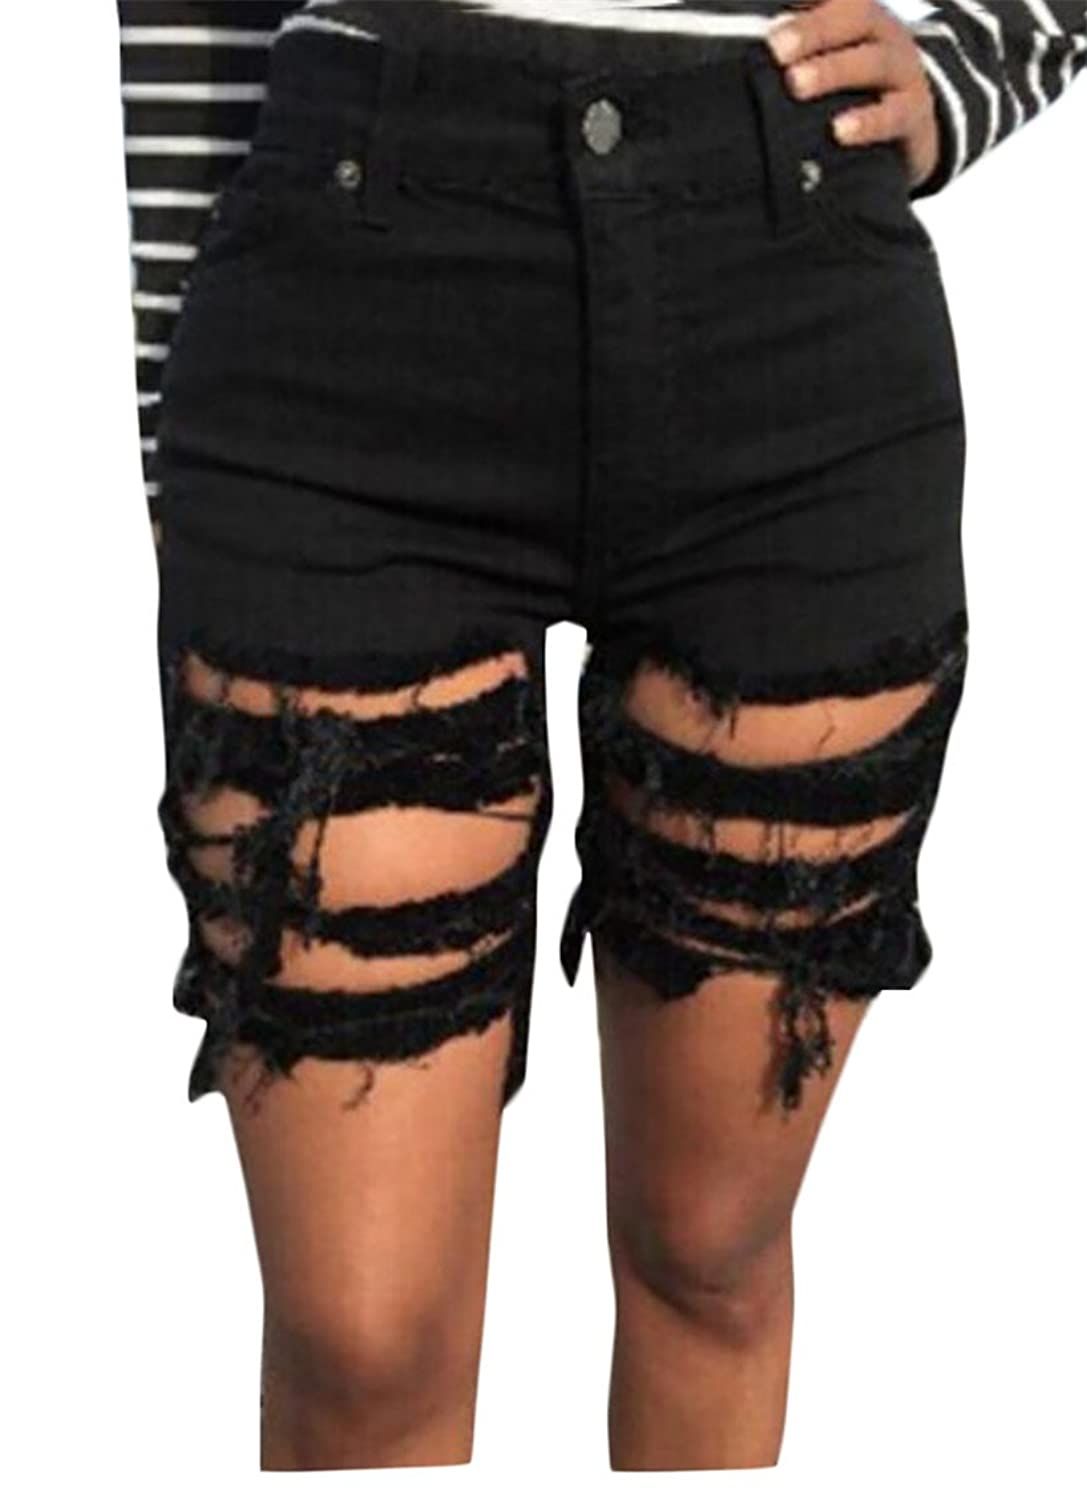 desolateness Women Classic Retro Ripped Hole Loose Cowboy Low Waist Short XS Black free shipping 7CNZYZ2H